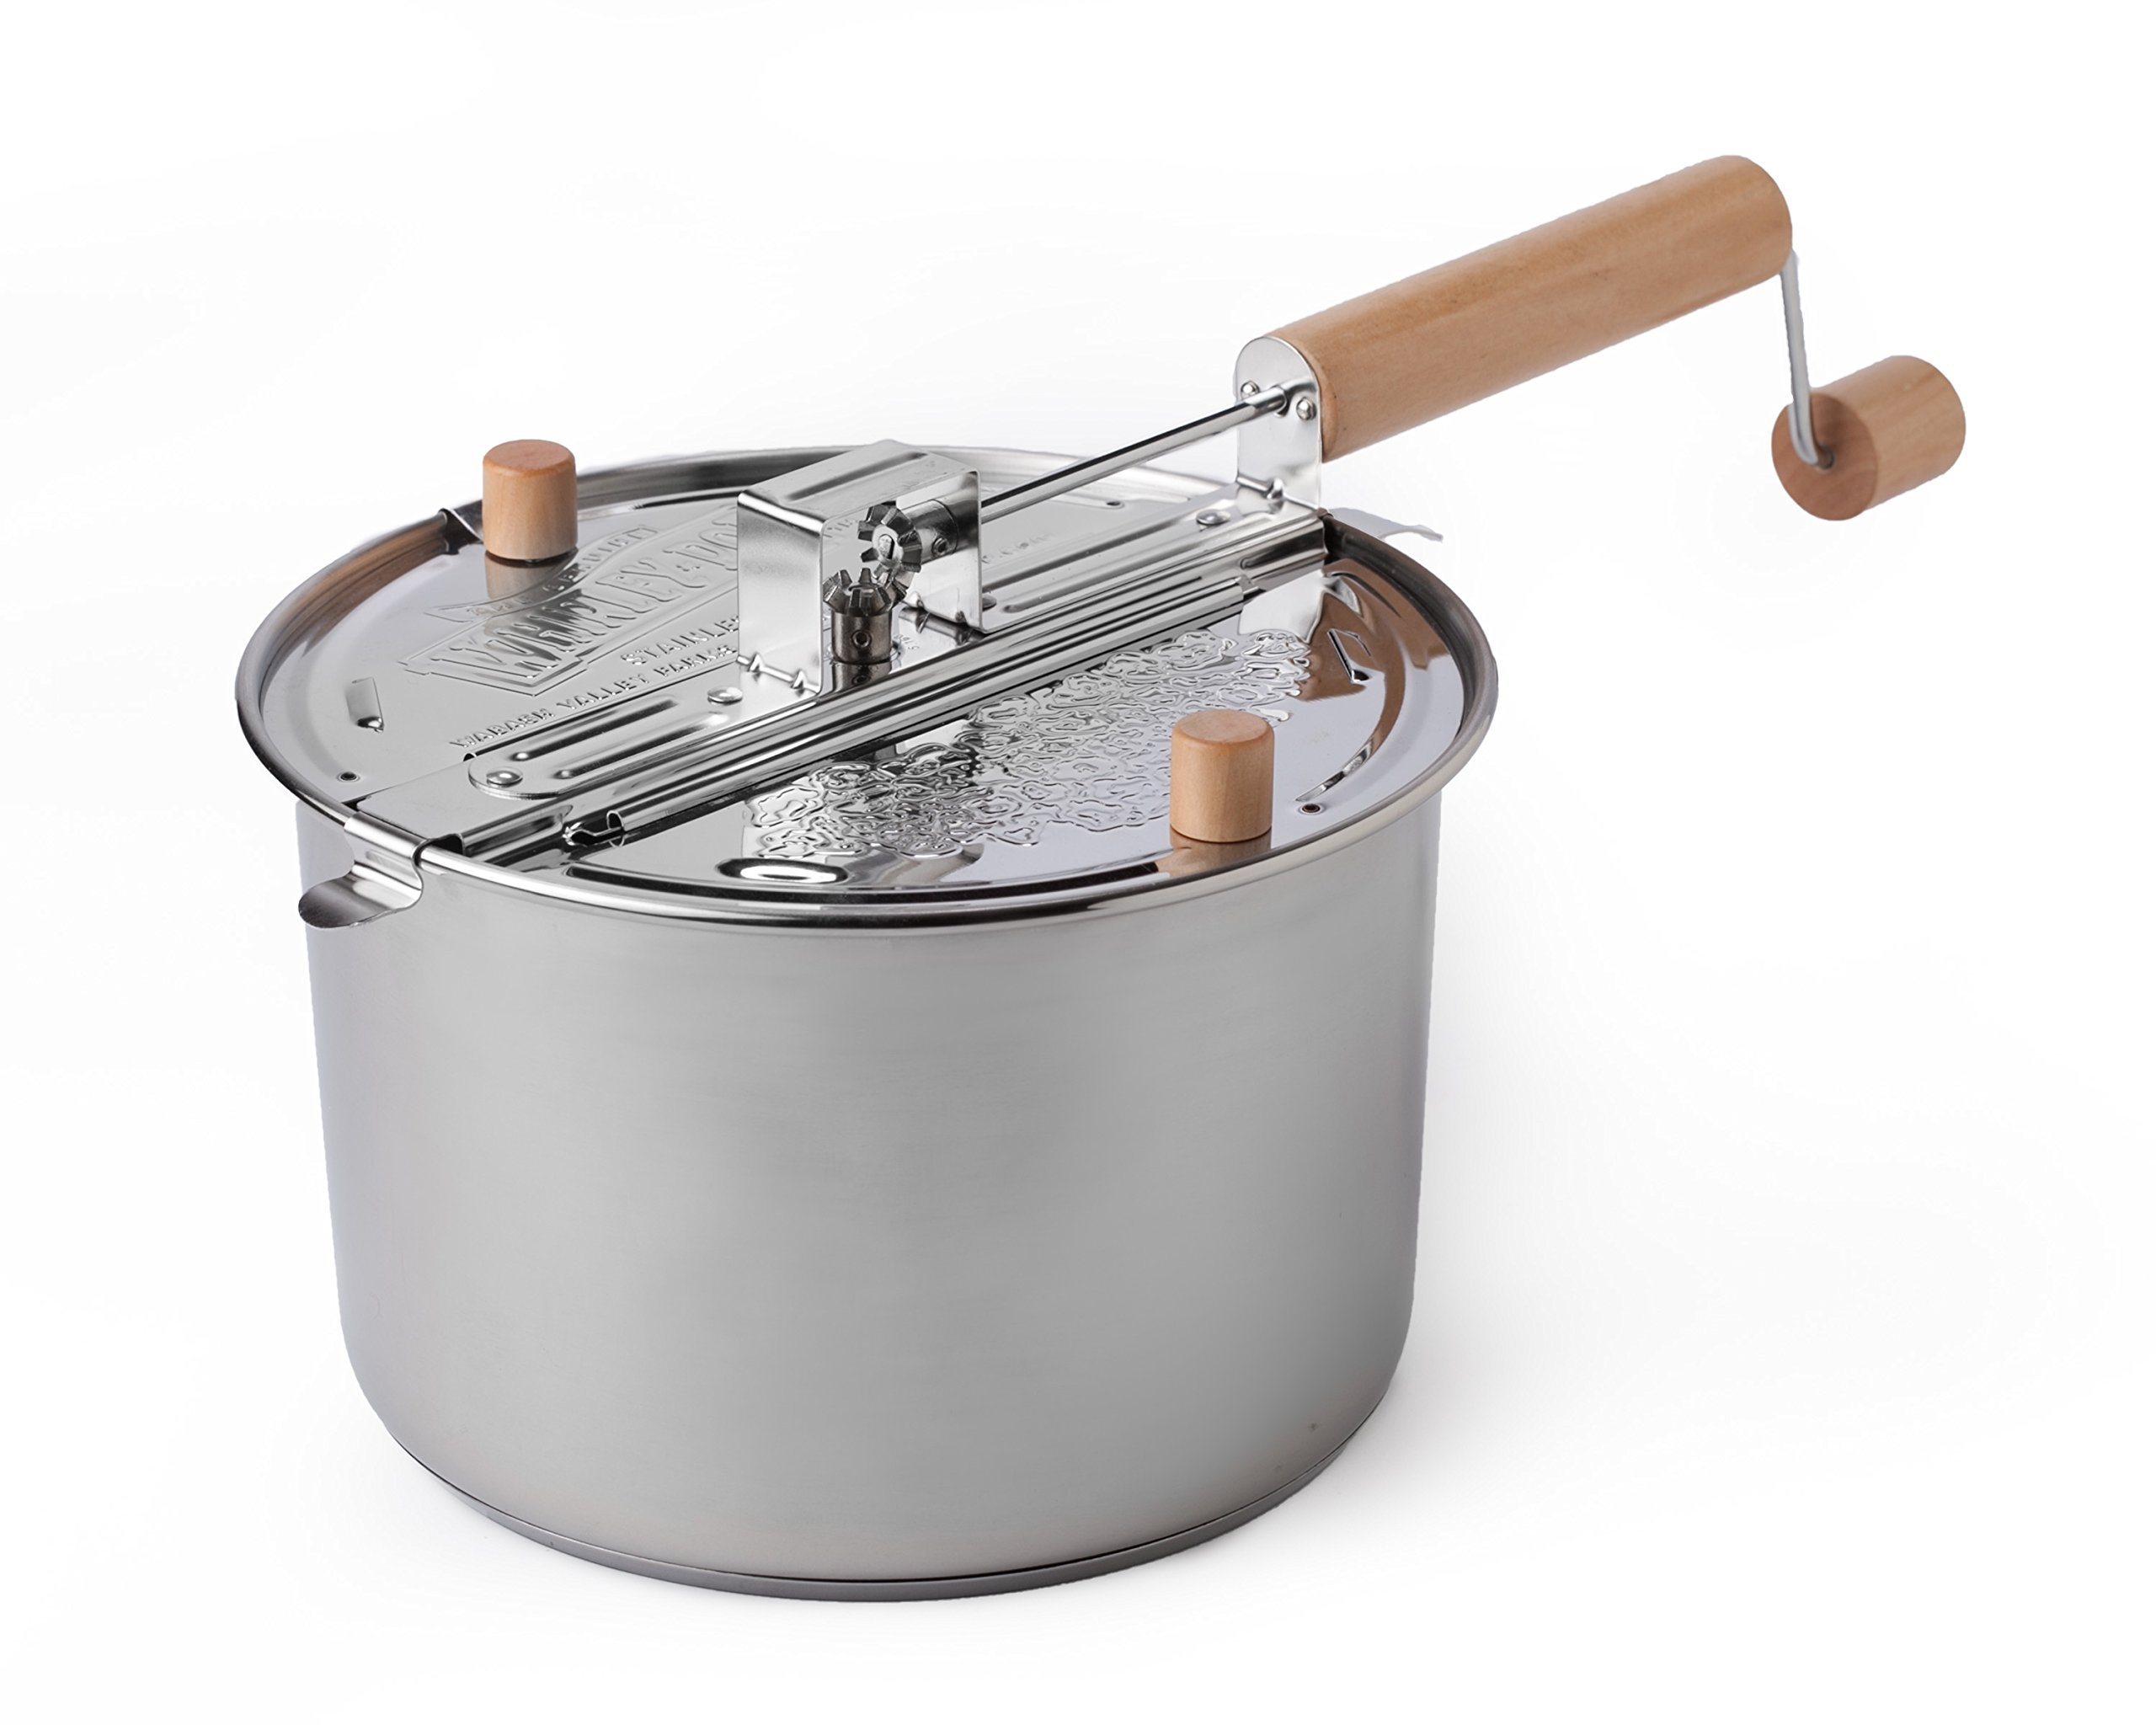 Whirley Pop Stainless Steel 6 Quart Stovetop Popper